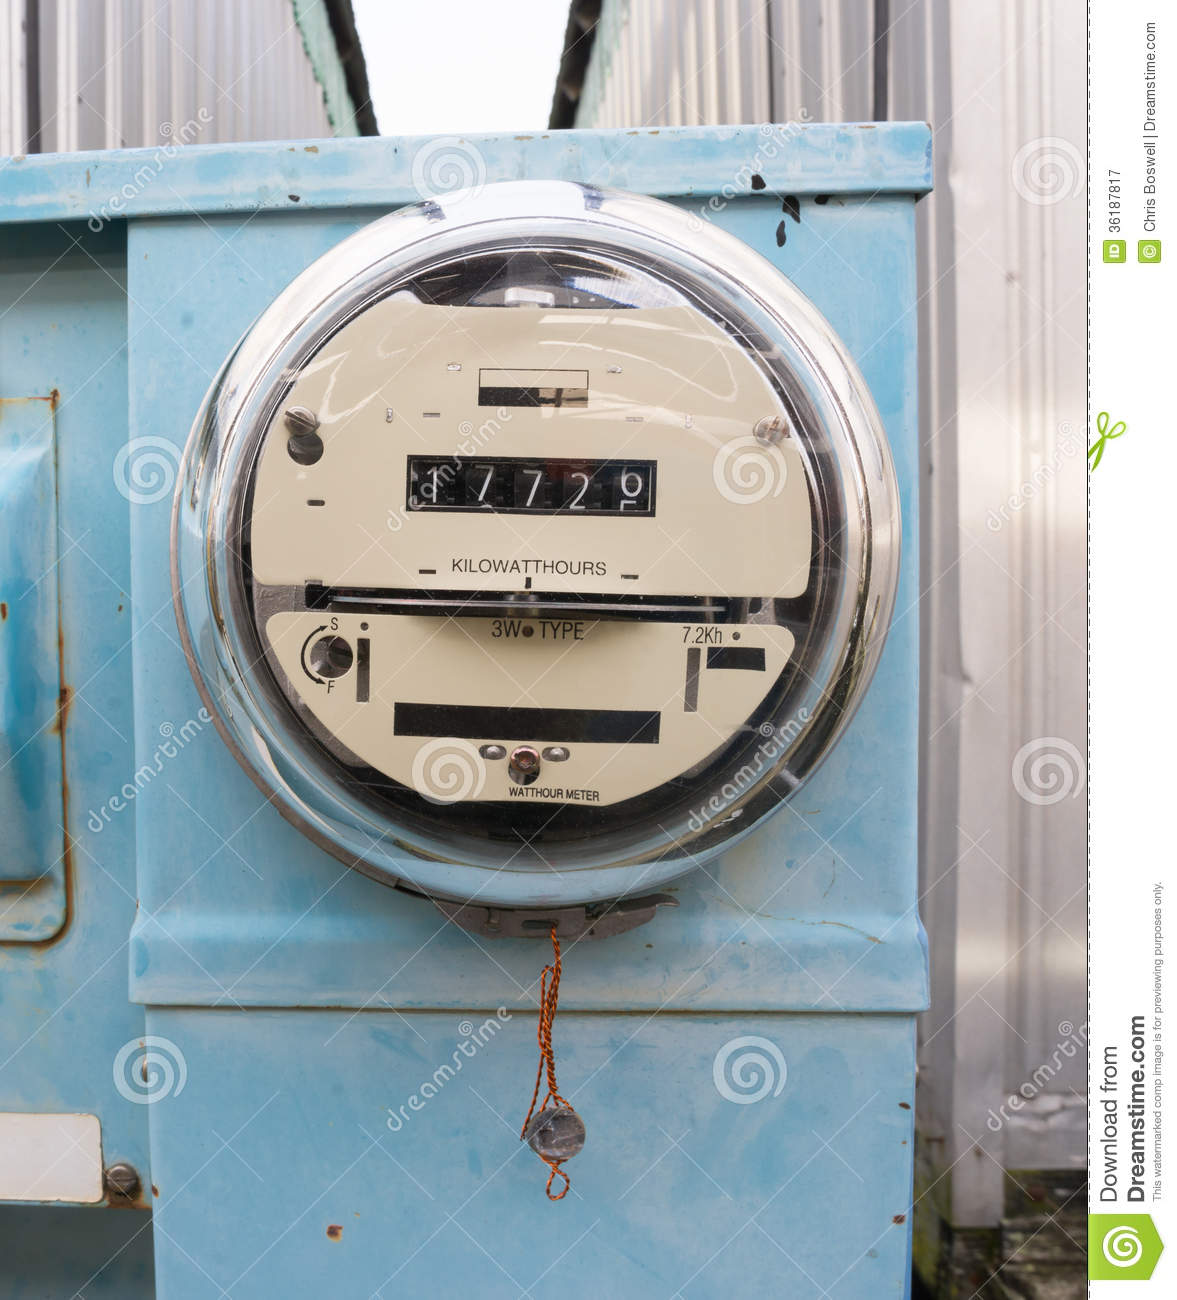 Utility Meter Analog : Glass dome watt hour electric utility meters dock outside